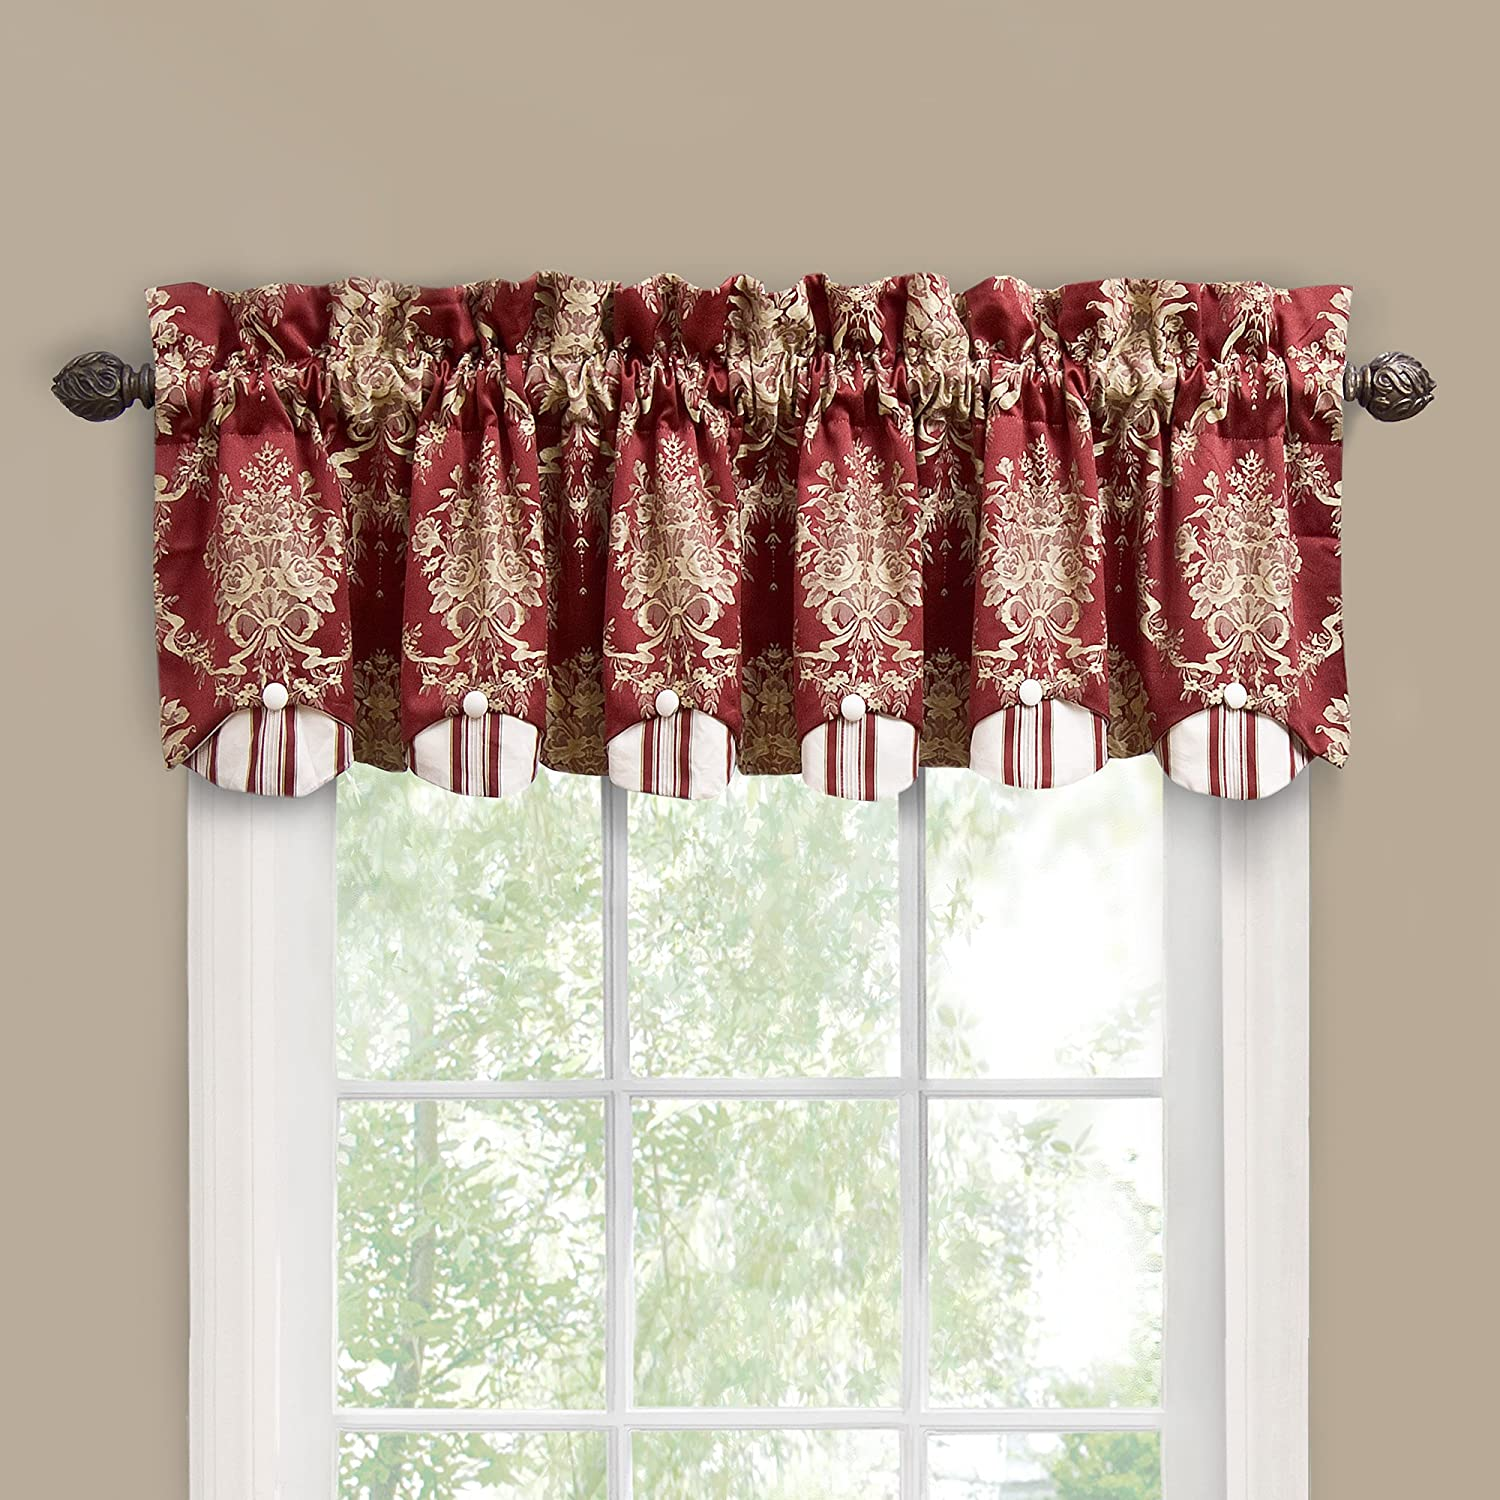 Waverly Rose Momento Window Valance, Merlot